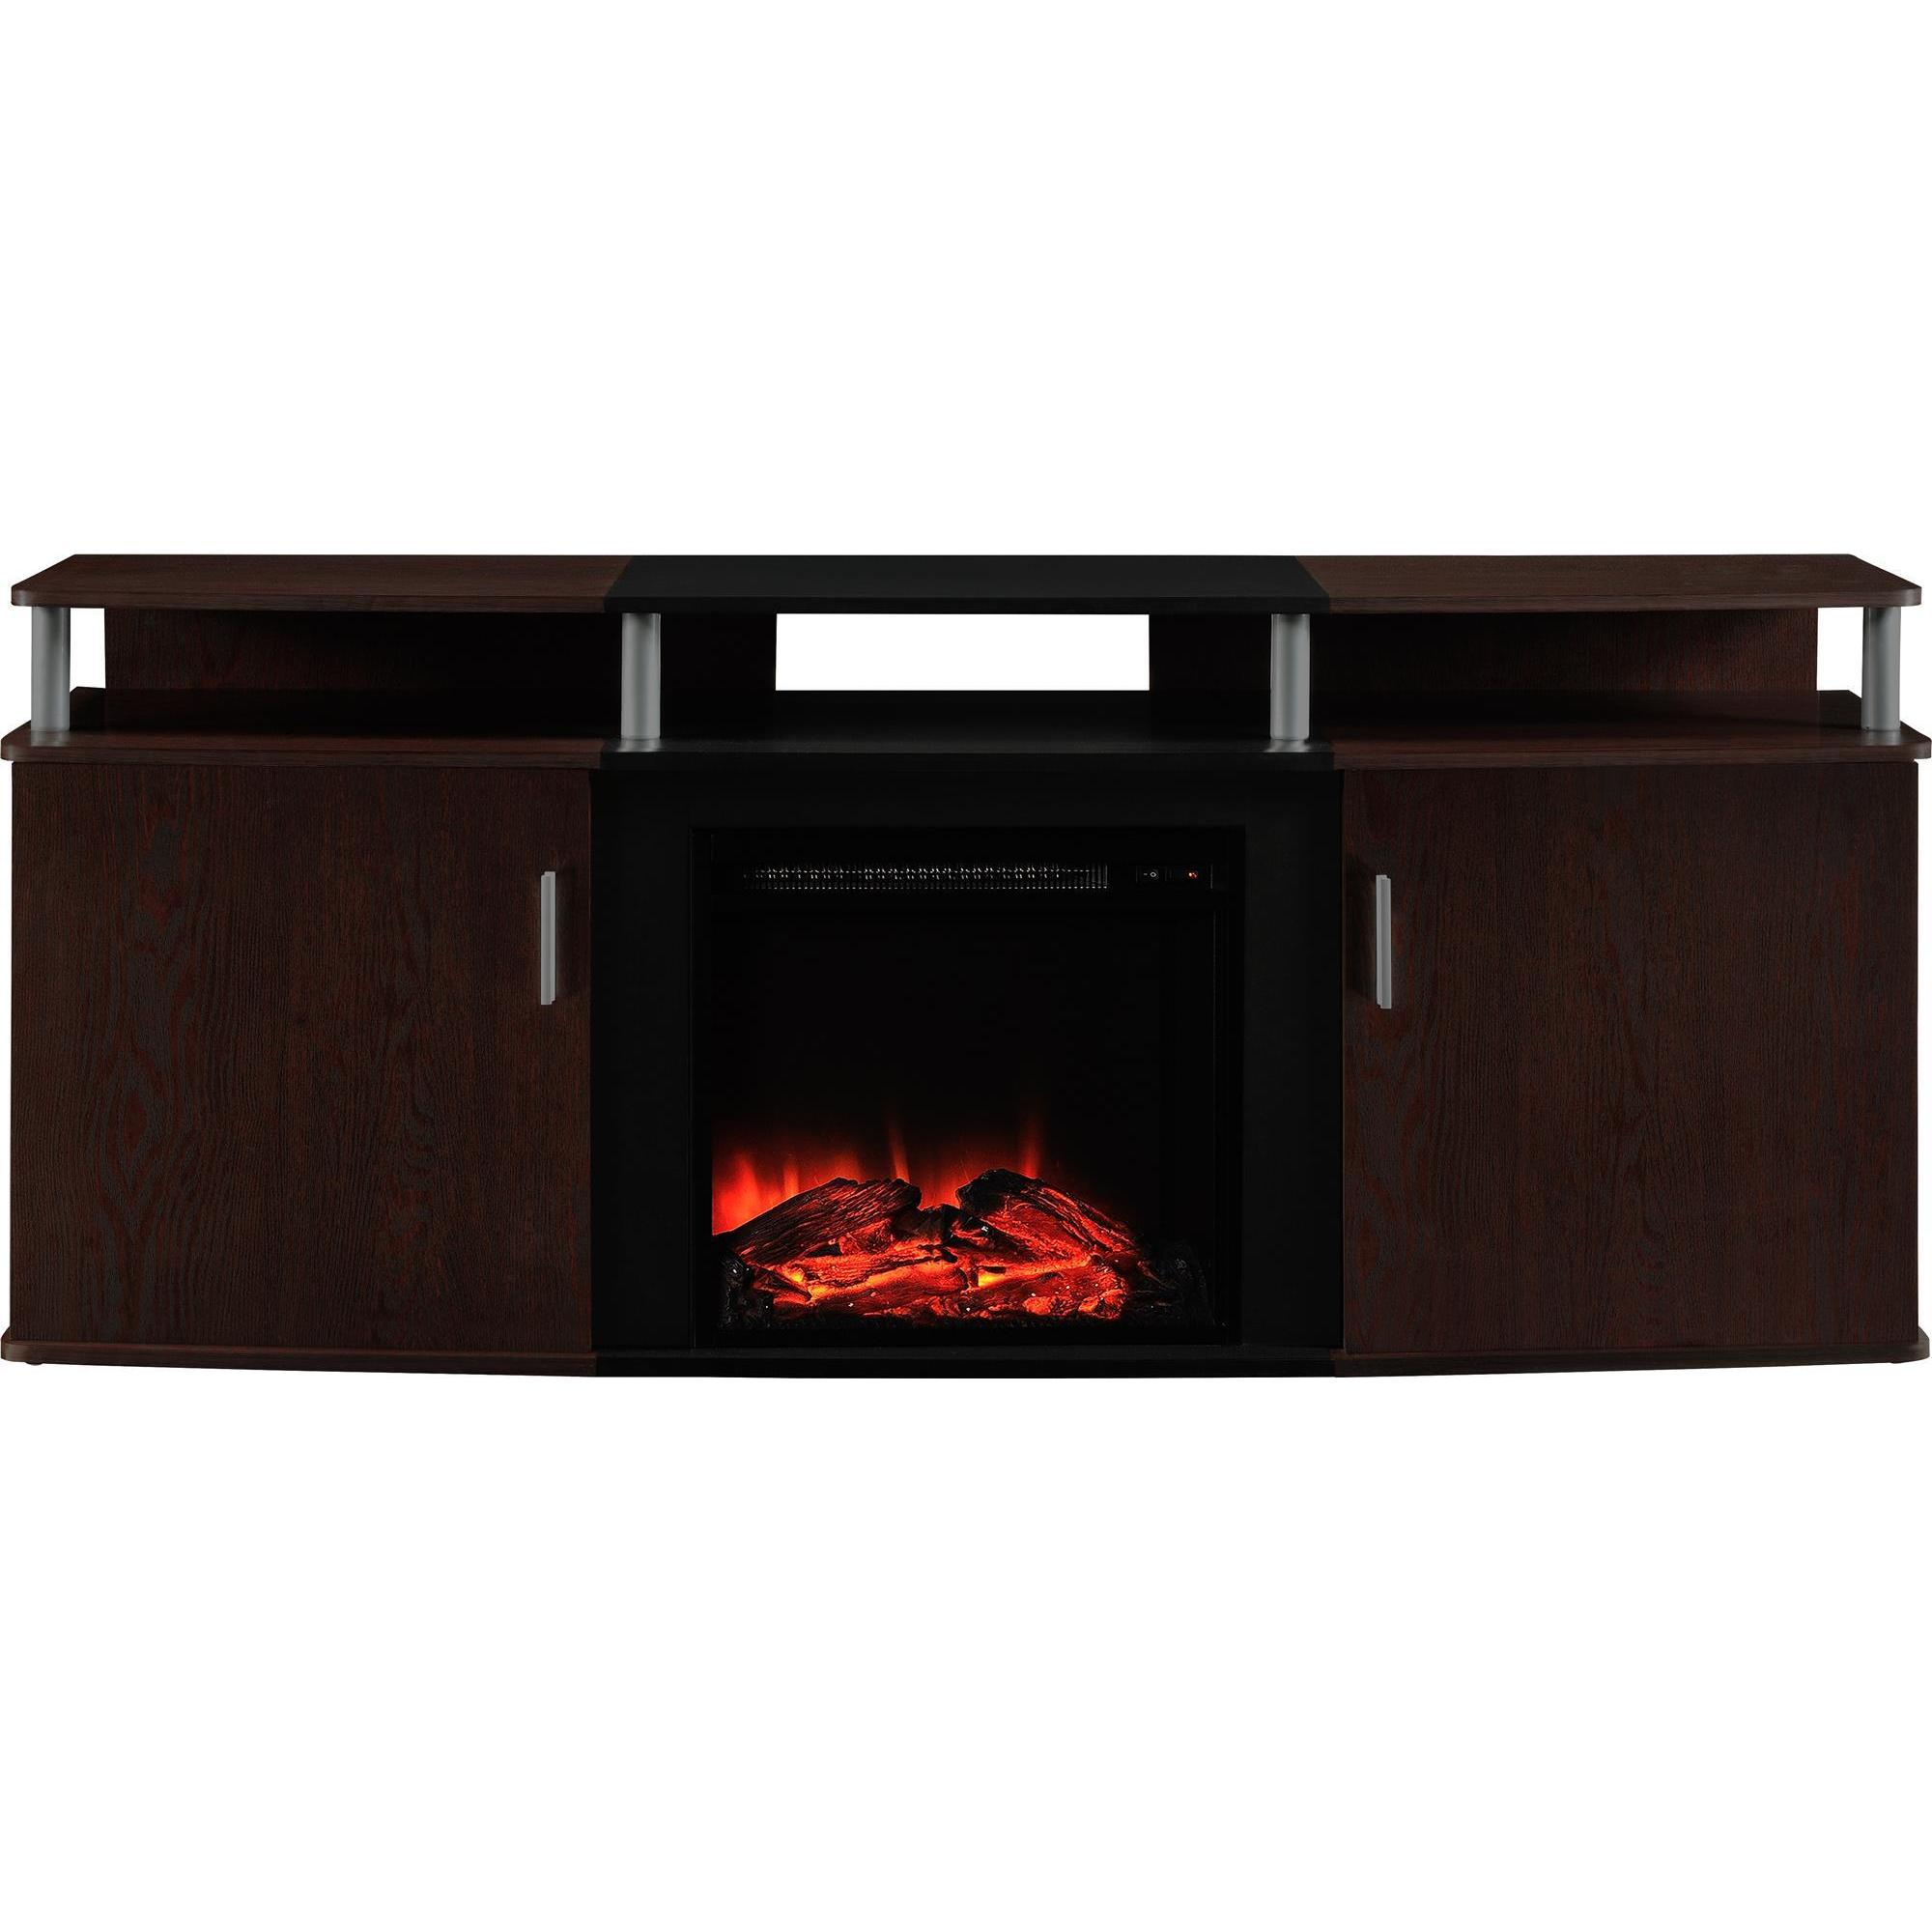 fireplace furniture best tv new mounts fireplaces counter size stands stand collection reviews awesome full theectric of electriclace pictures infrared with concept the lowes